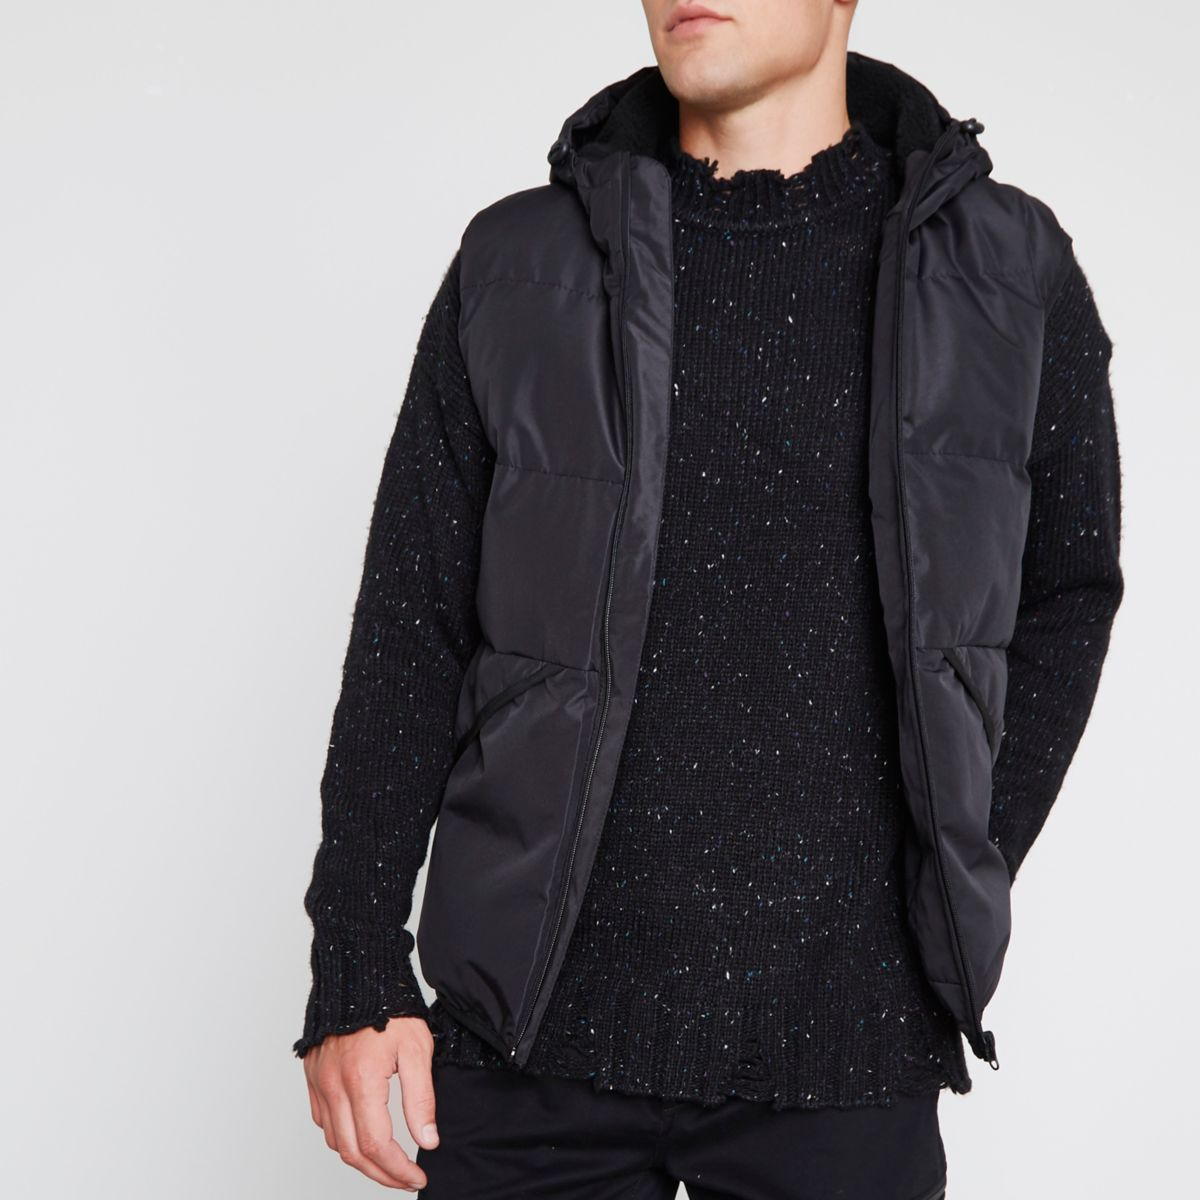 Black hooded puffer gilet